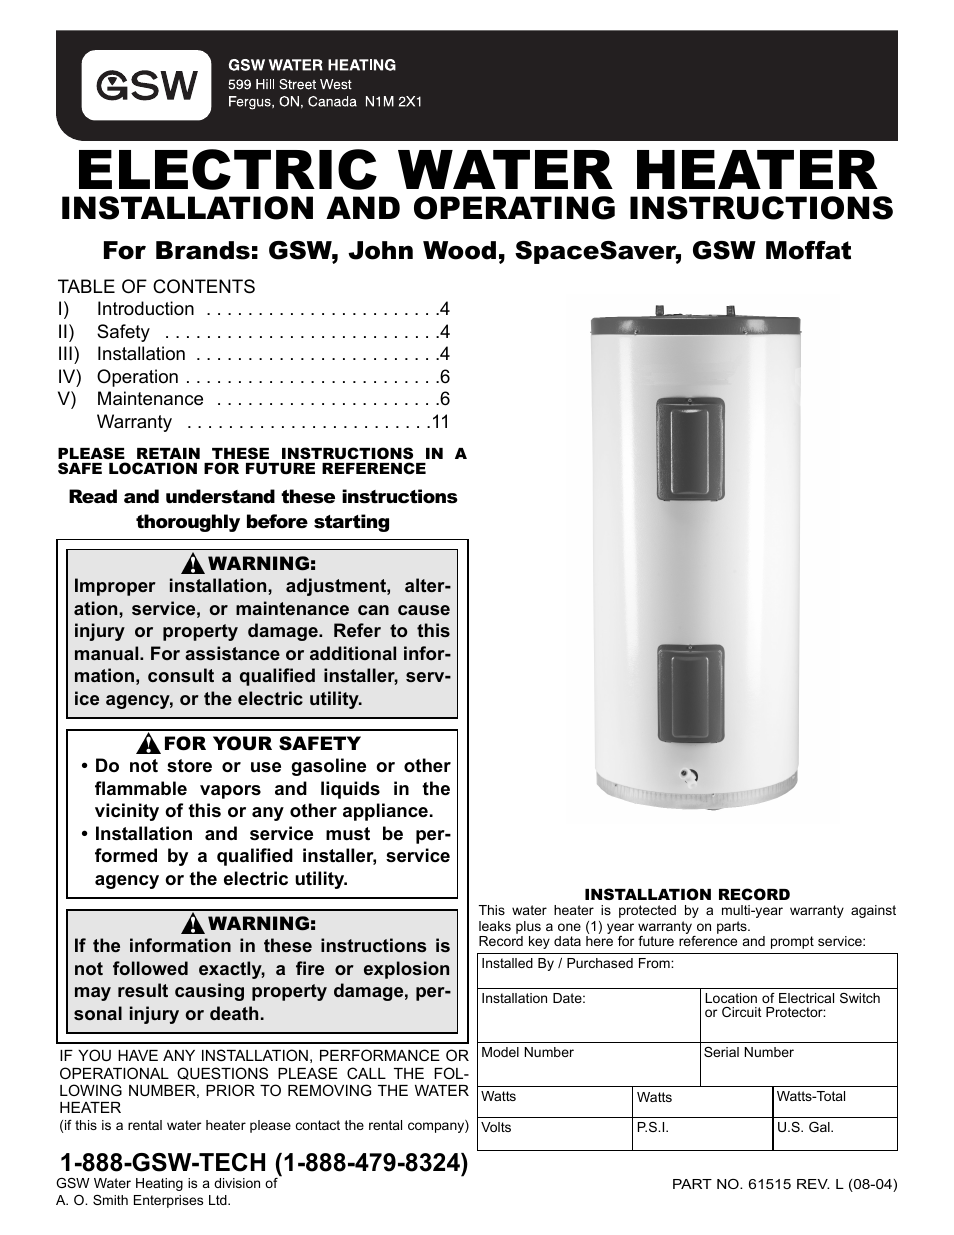 Troubleshooting Electric Hot Water Heater Manual Guide